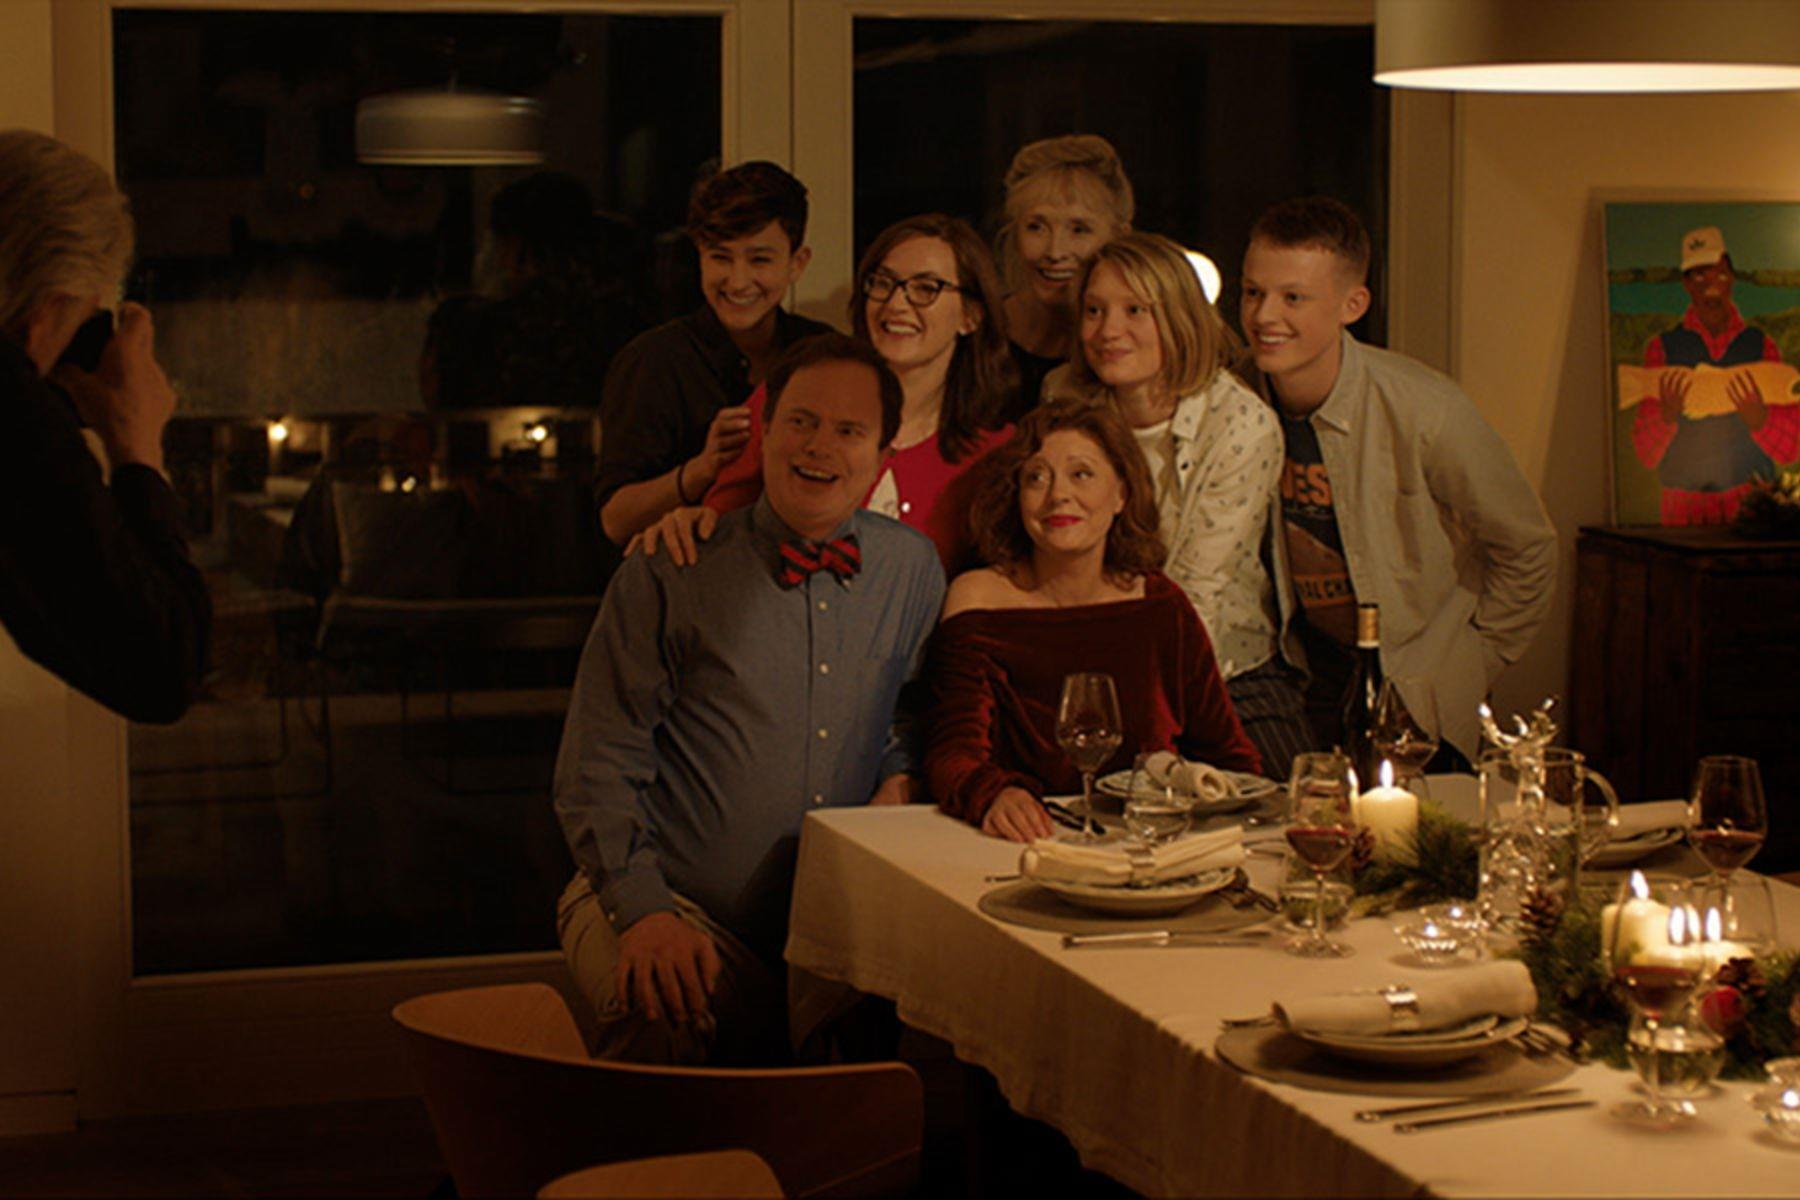 Blackbird plays it disappointingly safe and sticks with the trappings of dysfunctional family melodrama, complete with the stock characters and revelations.